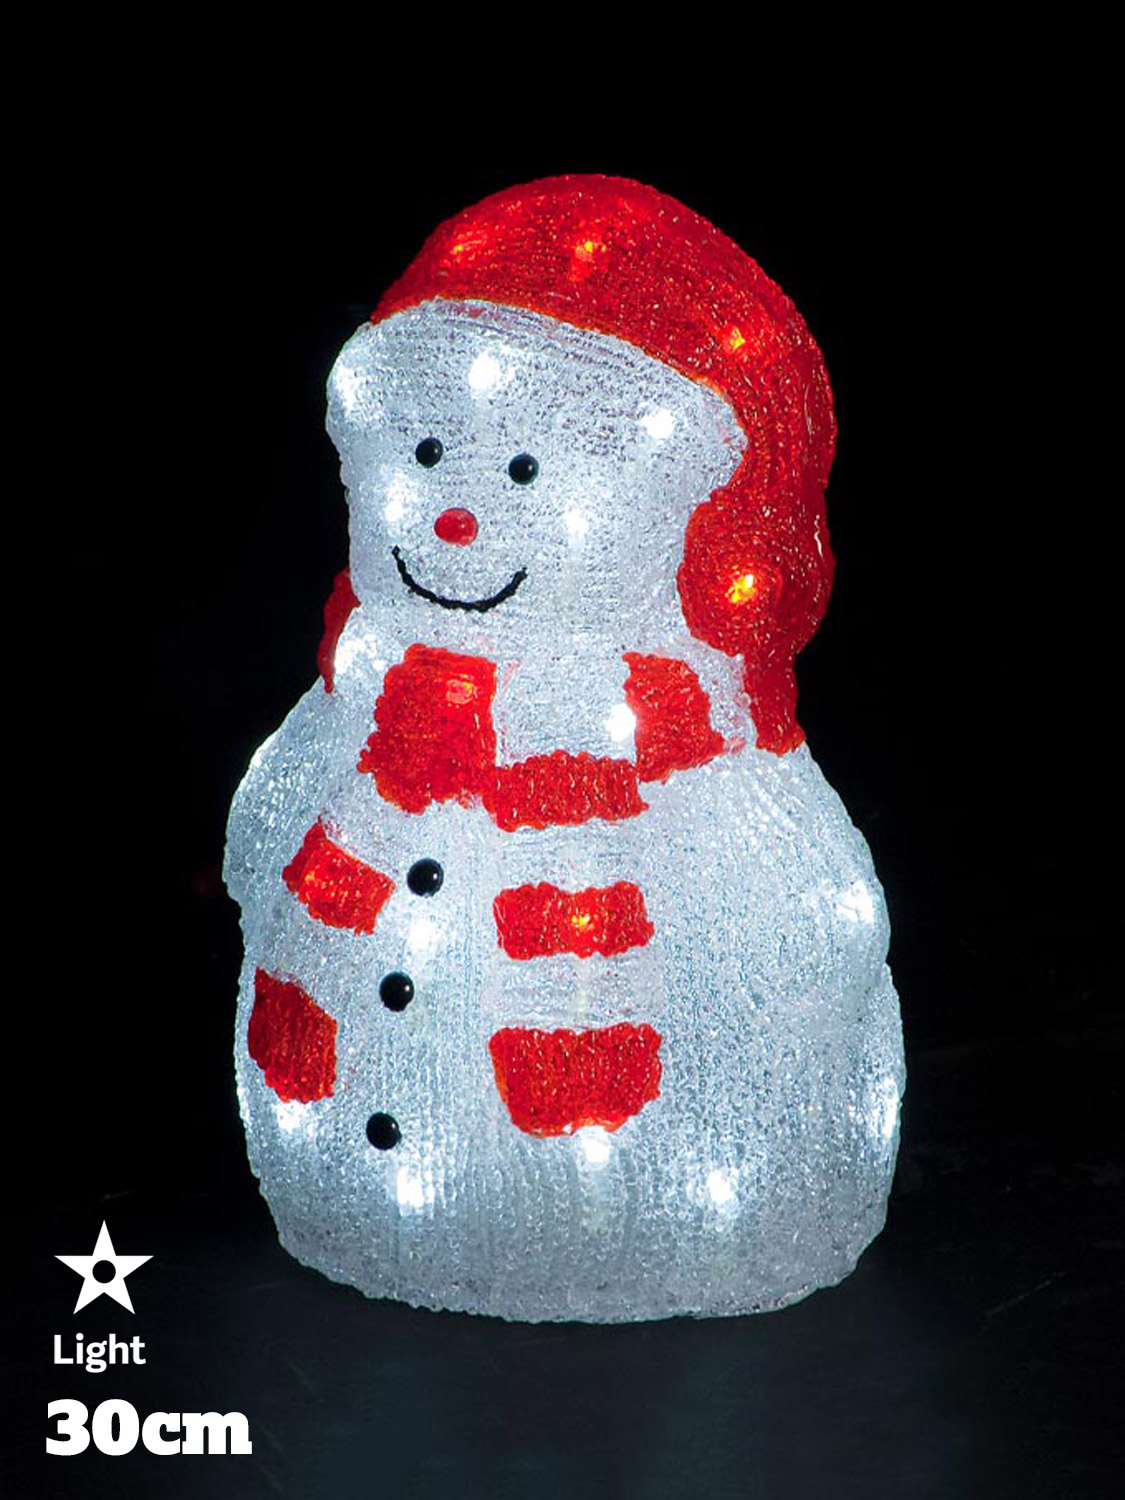 Led acrylic figures christmas decorations light up santa snowman led acrylic figures christmas decorations light up santa mozeypictures Choice Image